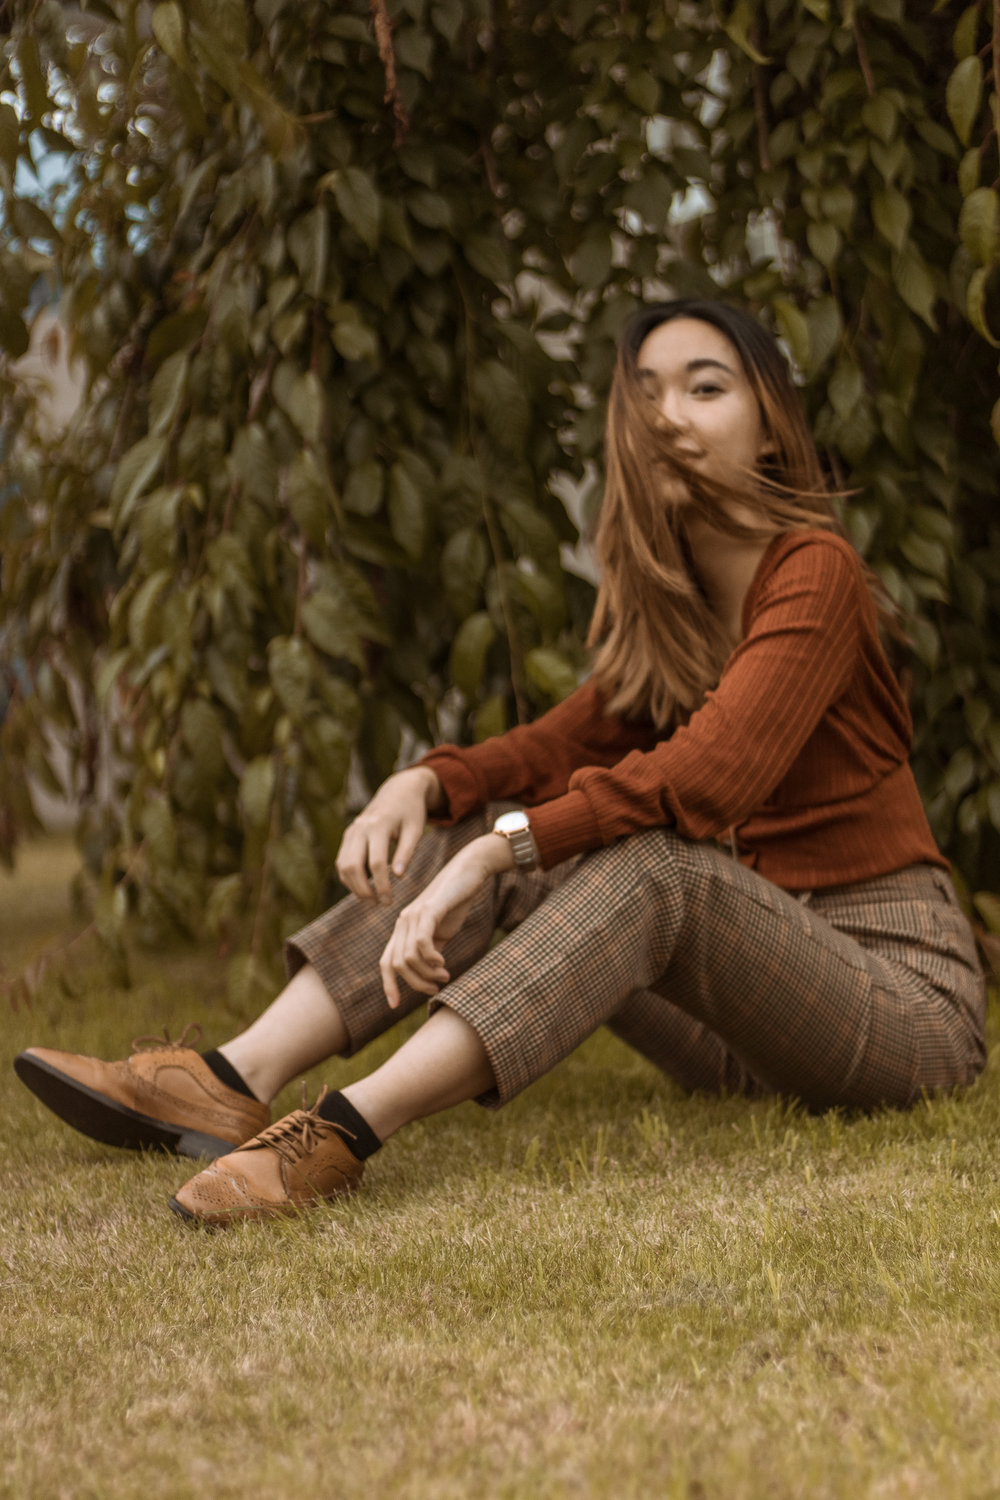 OUTFIT DETAILS   Ribbed rust cardigan top - Dynamite  Checked pants - Brandy Melville USA  Brogued Oxfords - ASOS